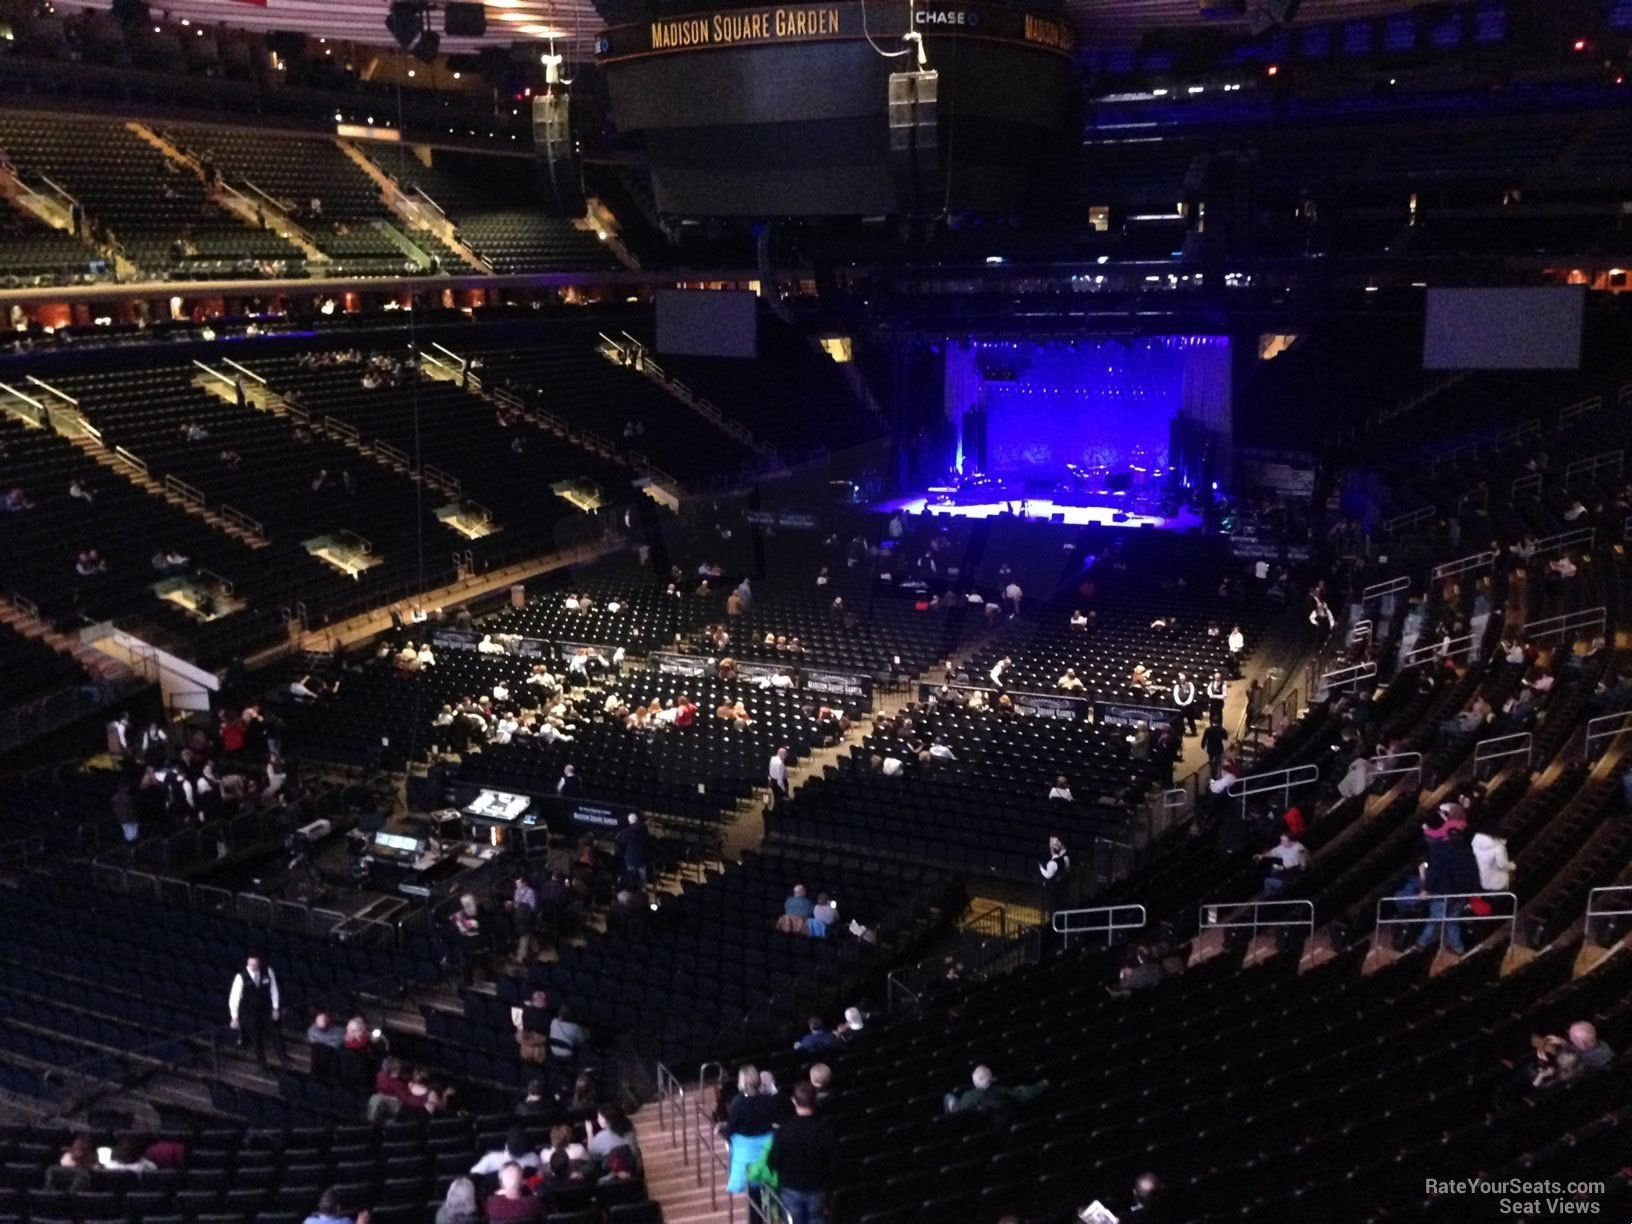 3f3aeddb8bf3fe653cd05cb6208bf1a7 - How Many Seats In Madison Square Gardens